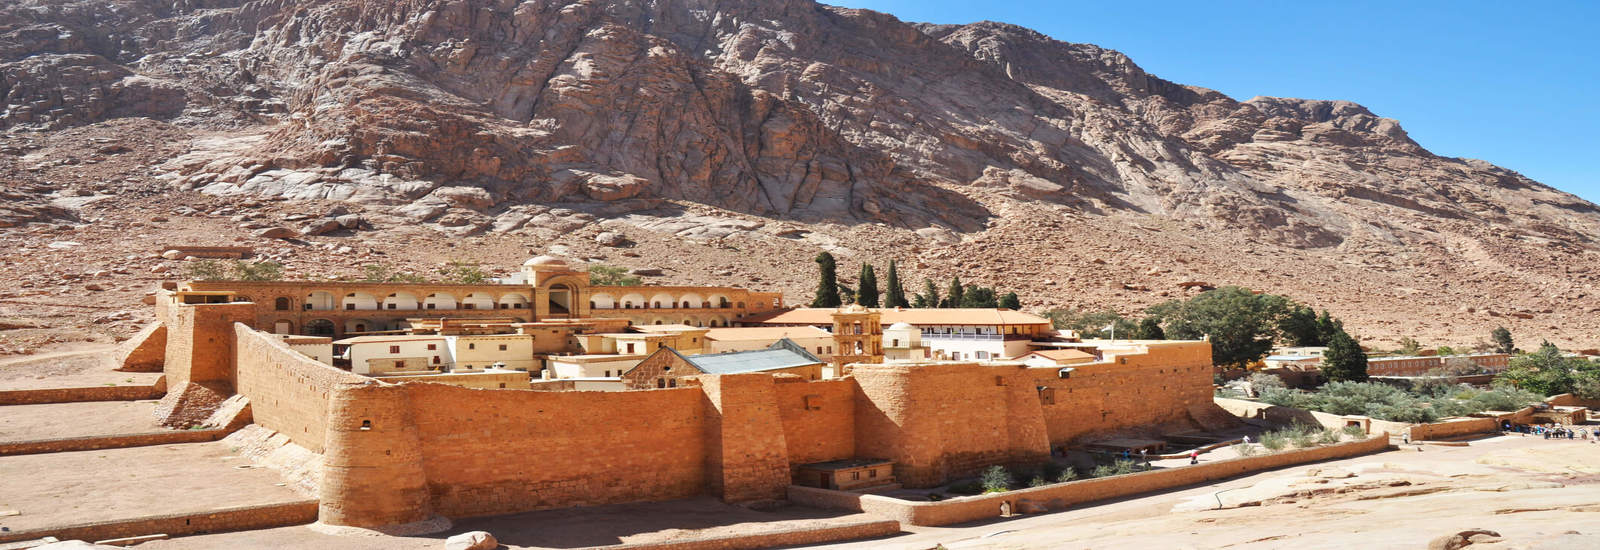 Tour to Saint Catherine monastery from Eilat (Sinai)